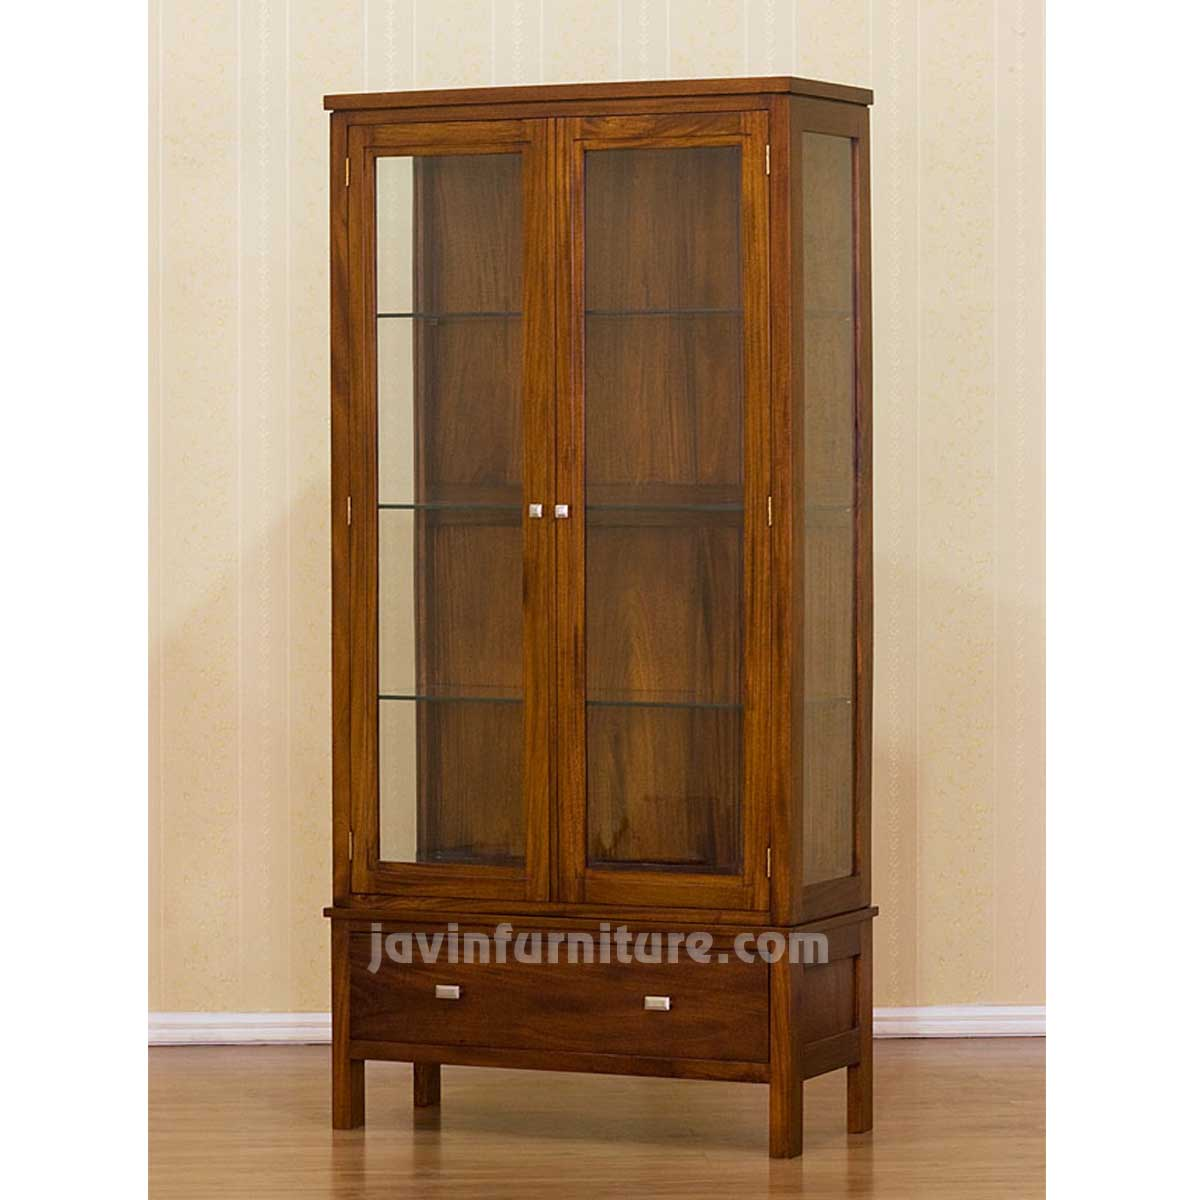 Wood Cabinets With Glass Doors